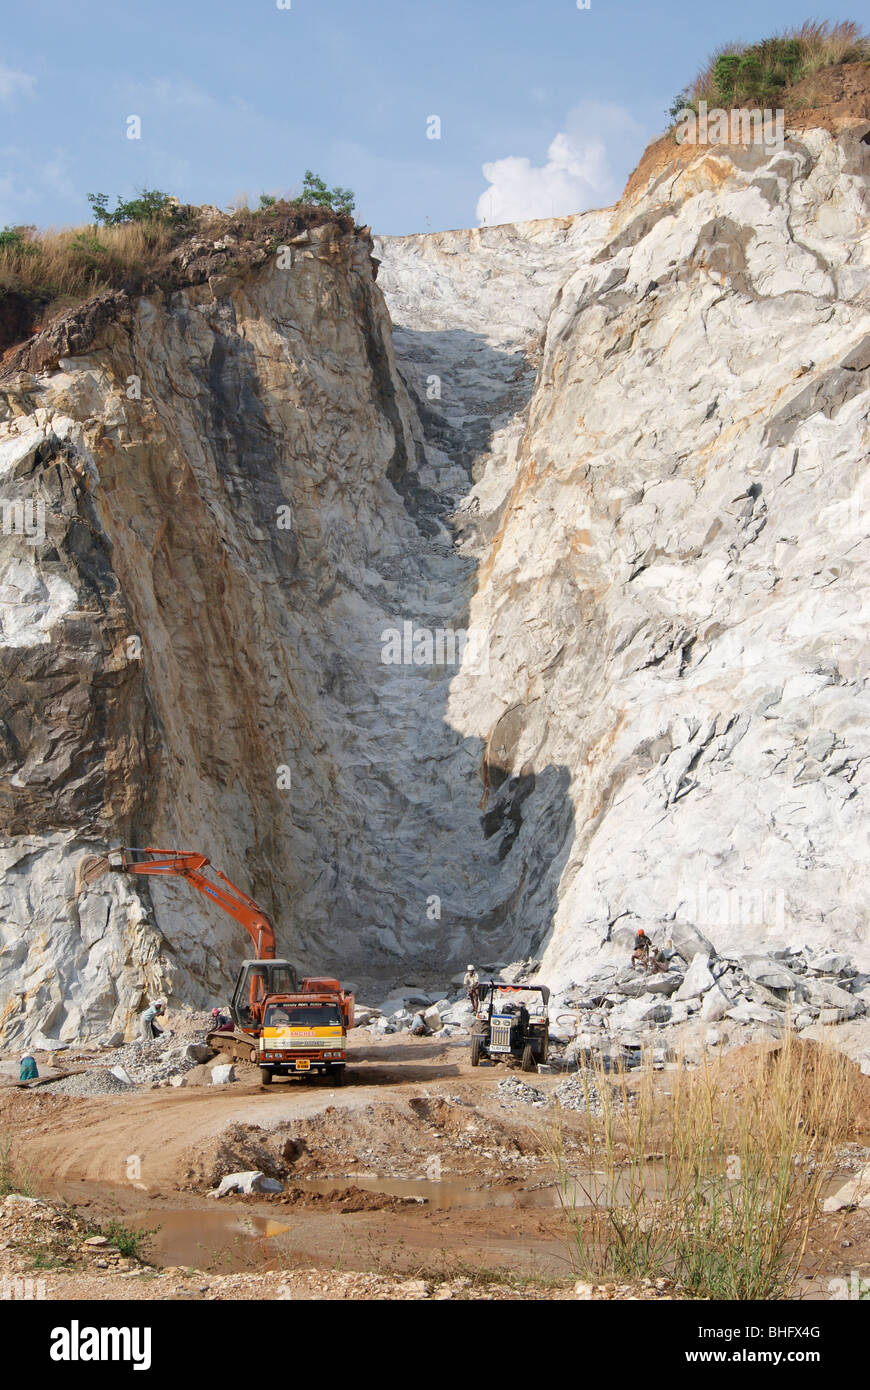 Huge Rock quarry.Natural environment (breaking Hills) destruction by Humans using machinery (Lorry and Earth movers - Stock Image